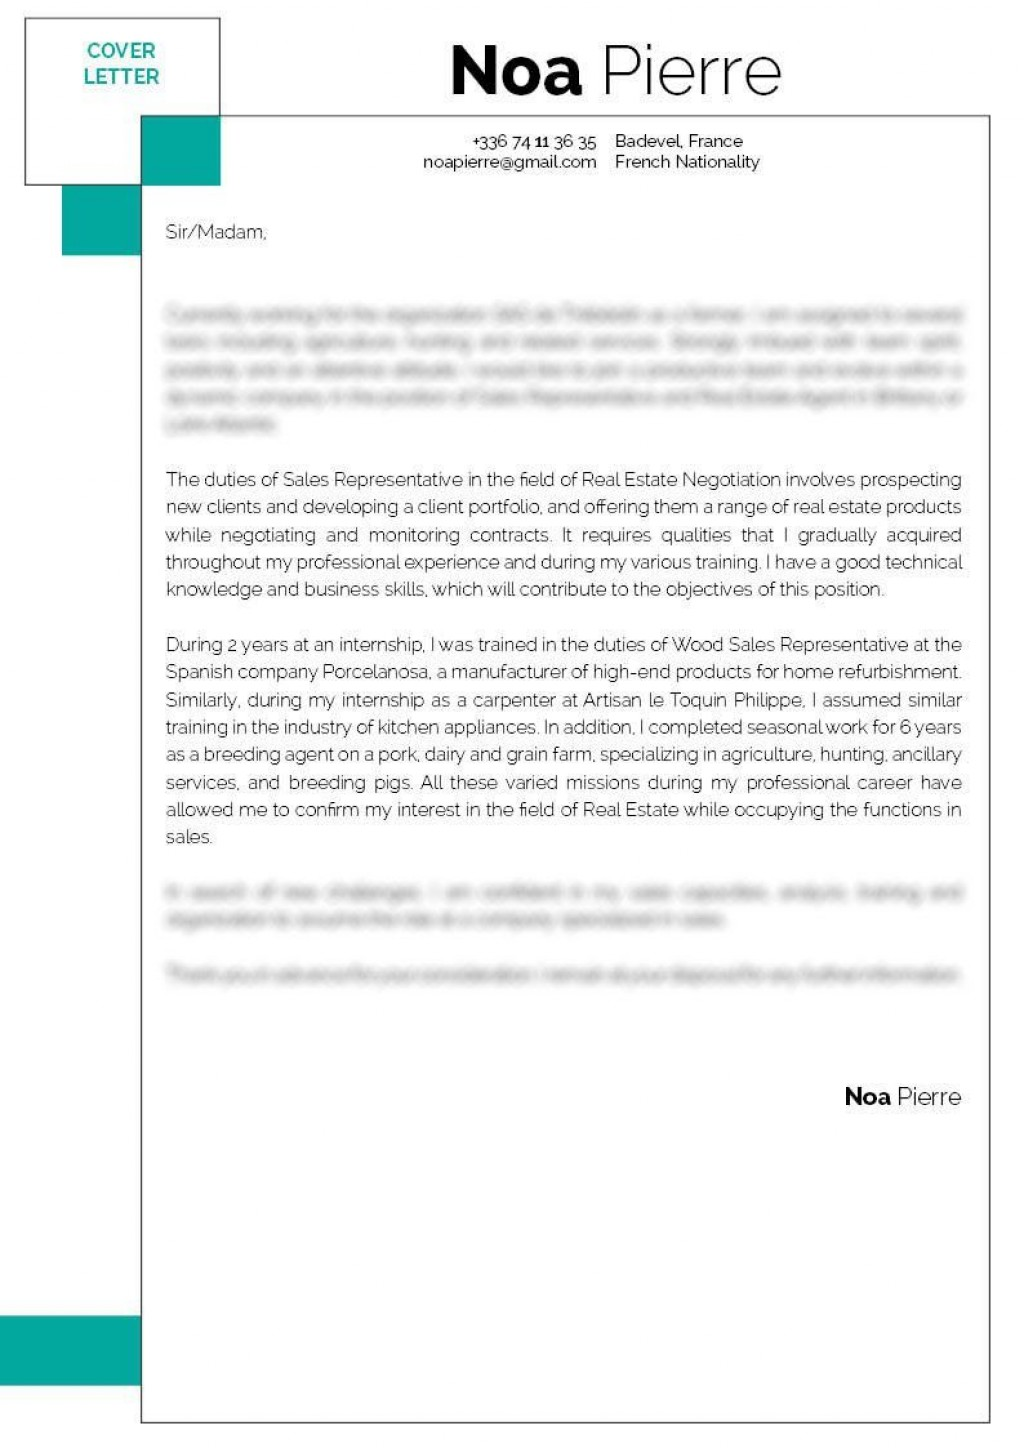 007 Singular Sale Cover Letter Template High Definition  Account Manager Word RepLarge